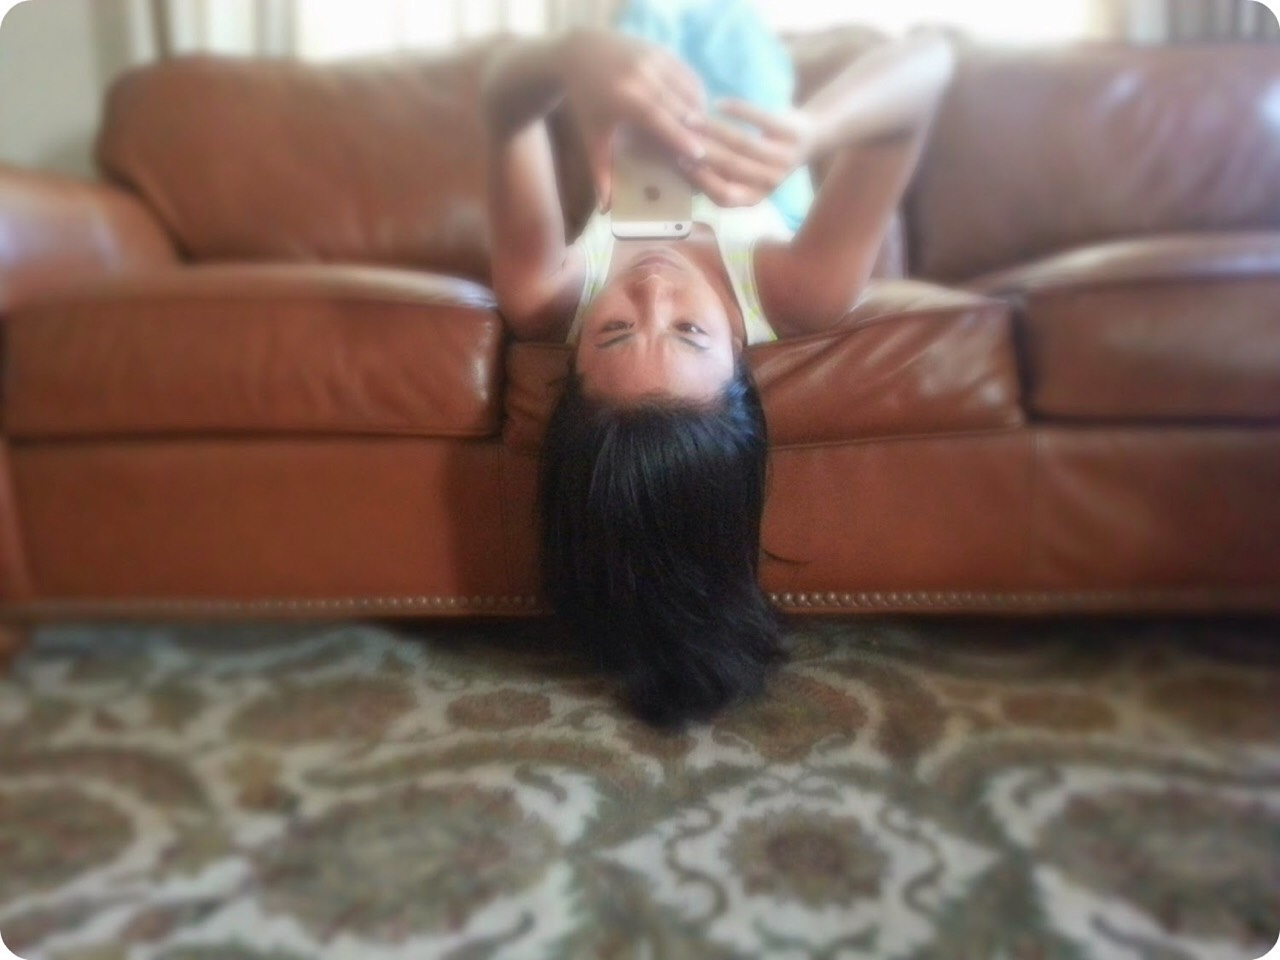 (Not me) tilt your head/lay back (like the one in the picture)